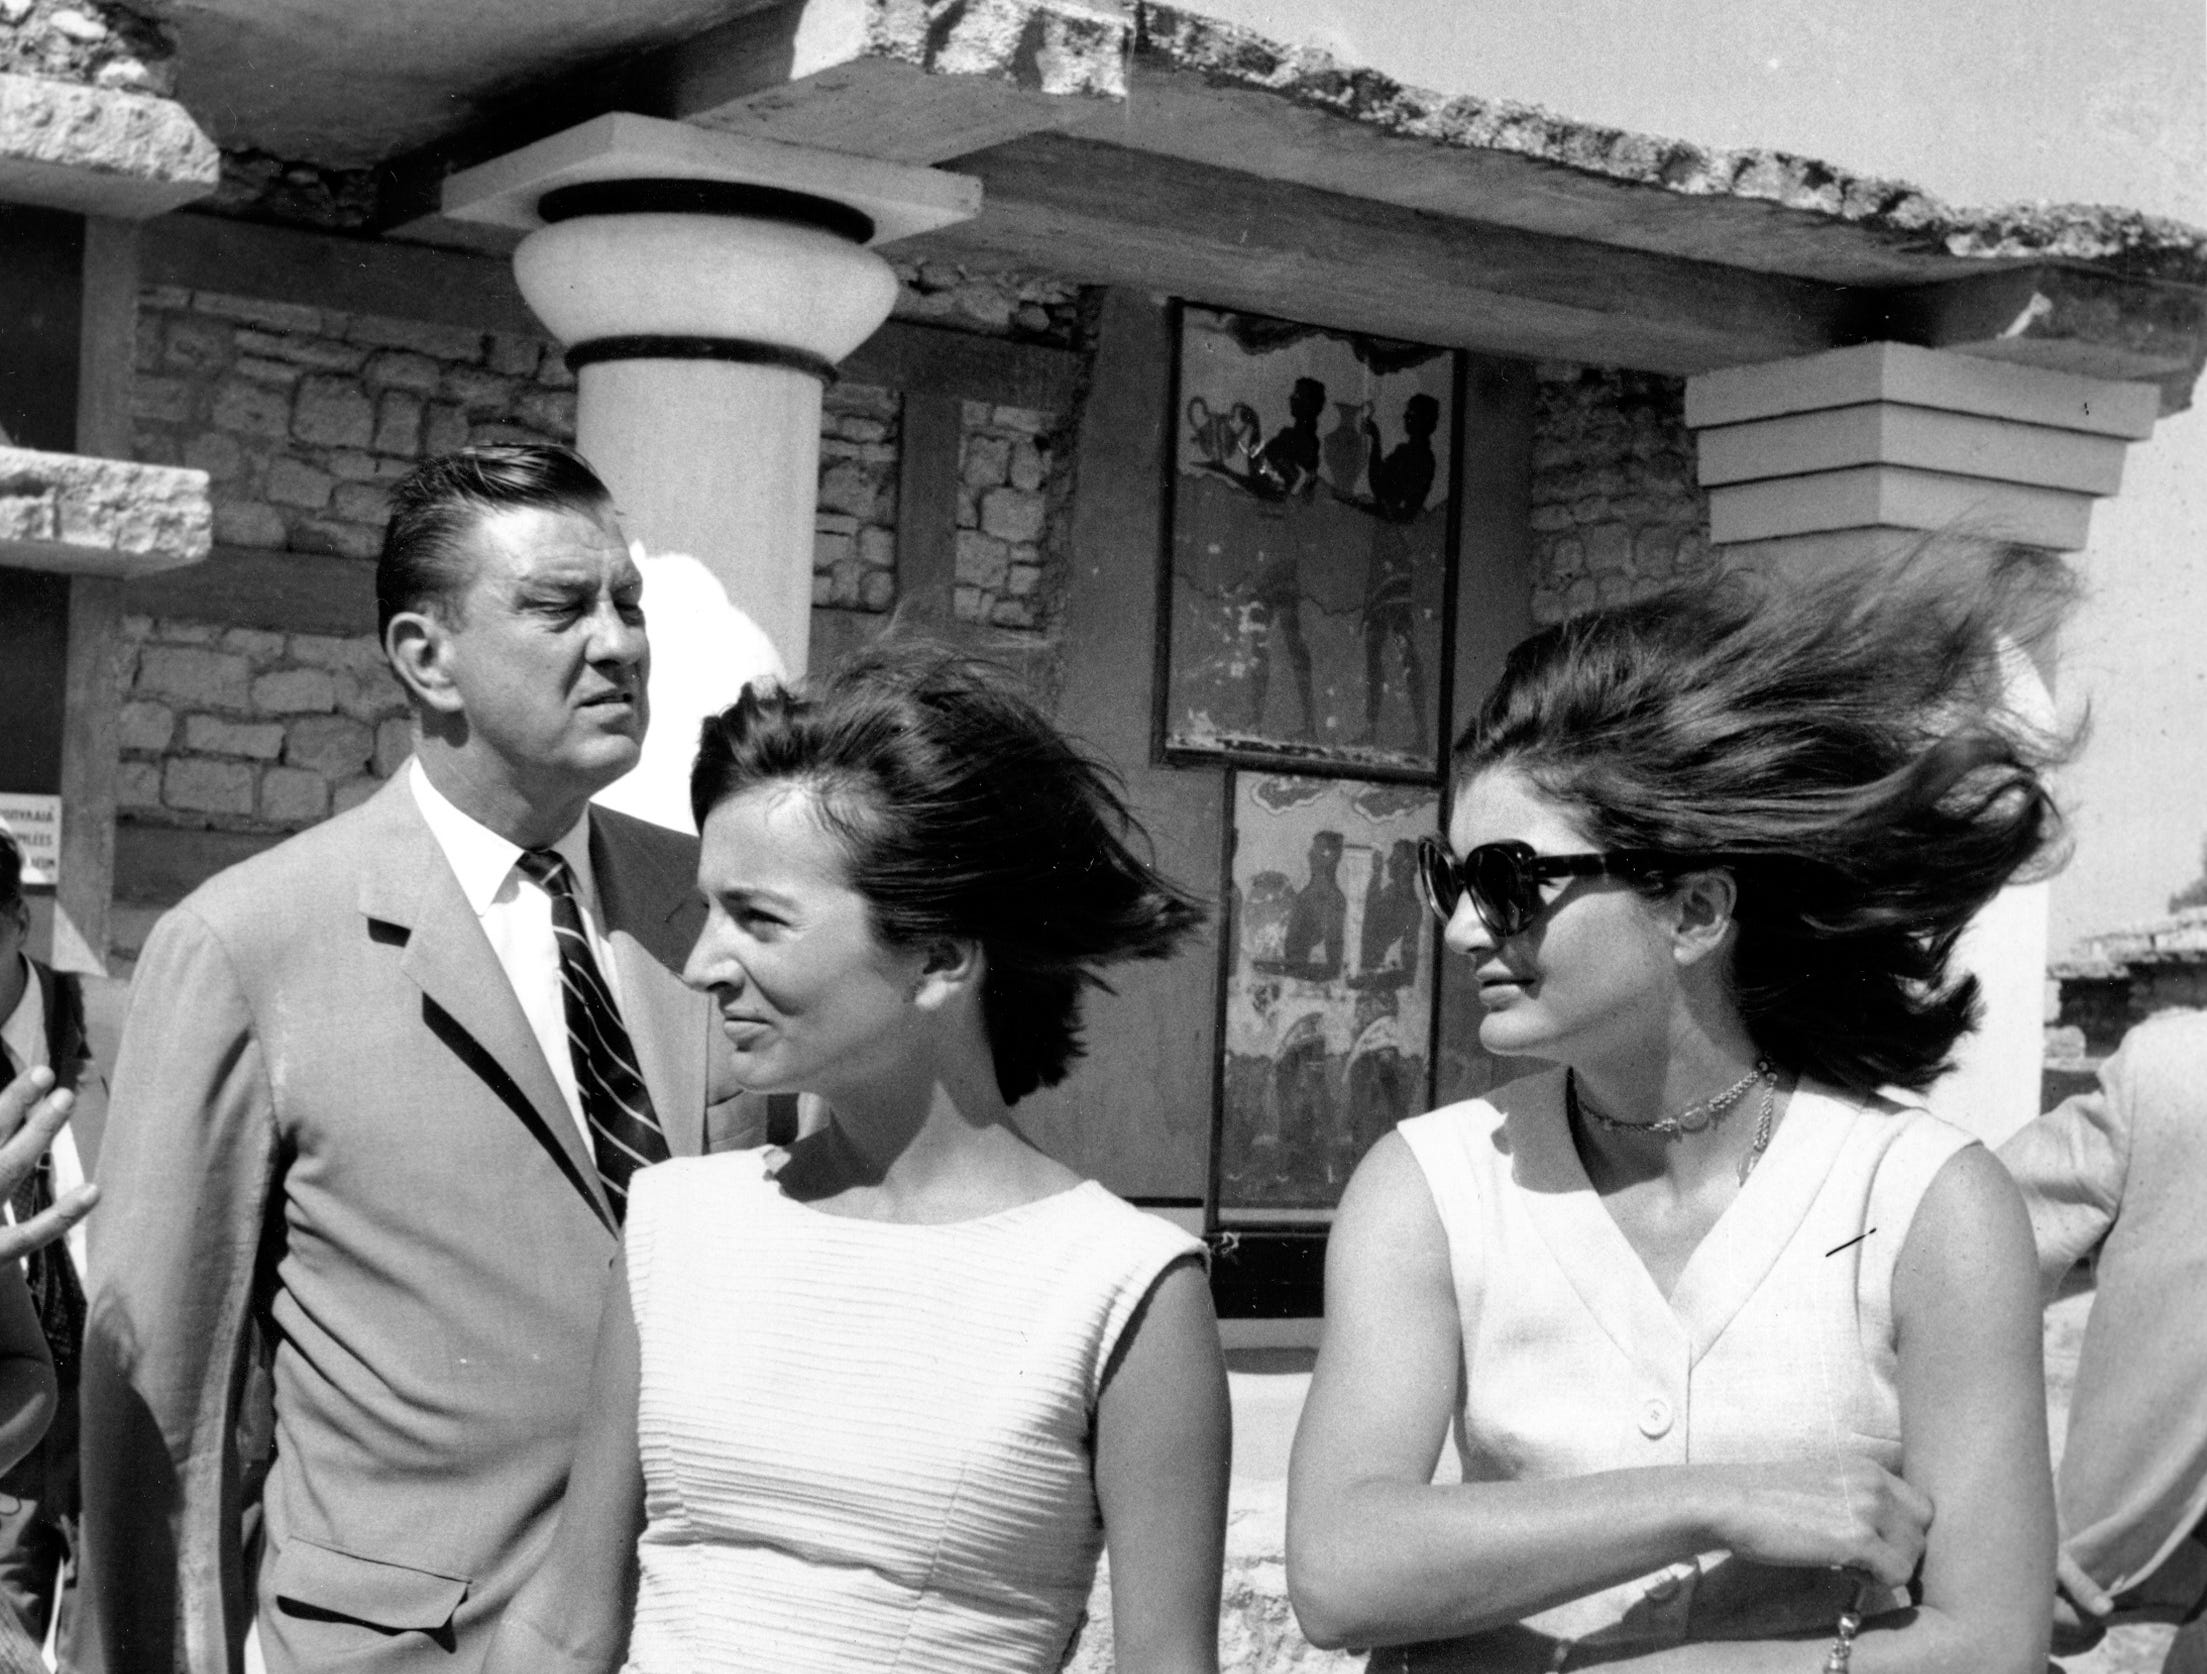 U.S. first lady Jacqueline Kennedy and her sister, Lee Radziwill, tour the Palace of Knossos during their visit to the remnants of the Minoan civilization at Iraklion on the Island of Crete in Greece on Oct. 8, 1963. The first lady is vacationing on the Mediterranean Sea.